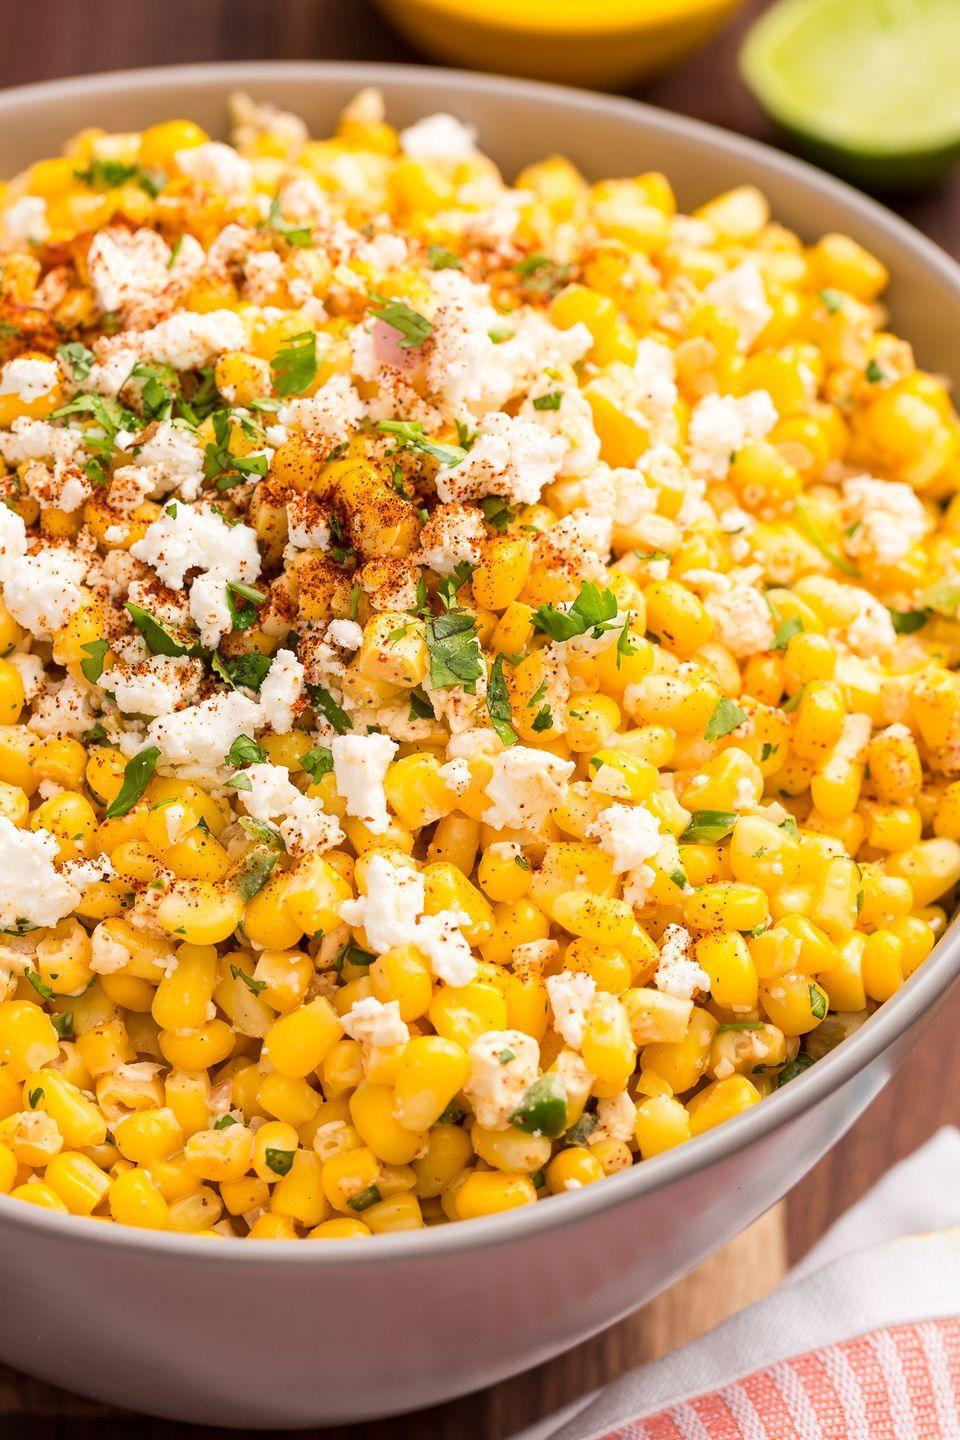 "<p>Mexican street-style corn meets corn salad in the best way.</p><p>Get the recipe from <a href=""https://www.delish.com/cooking/recipe-ideas/recipes/a43194/mexican-corn-salad-recipe/"" rel=""nofollow noopener"" target=""_blank"" data-ylk=""slk:Delish"" class=""link rapid-noclick-resp"">Delish</a>.</p>"